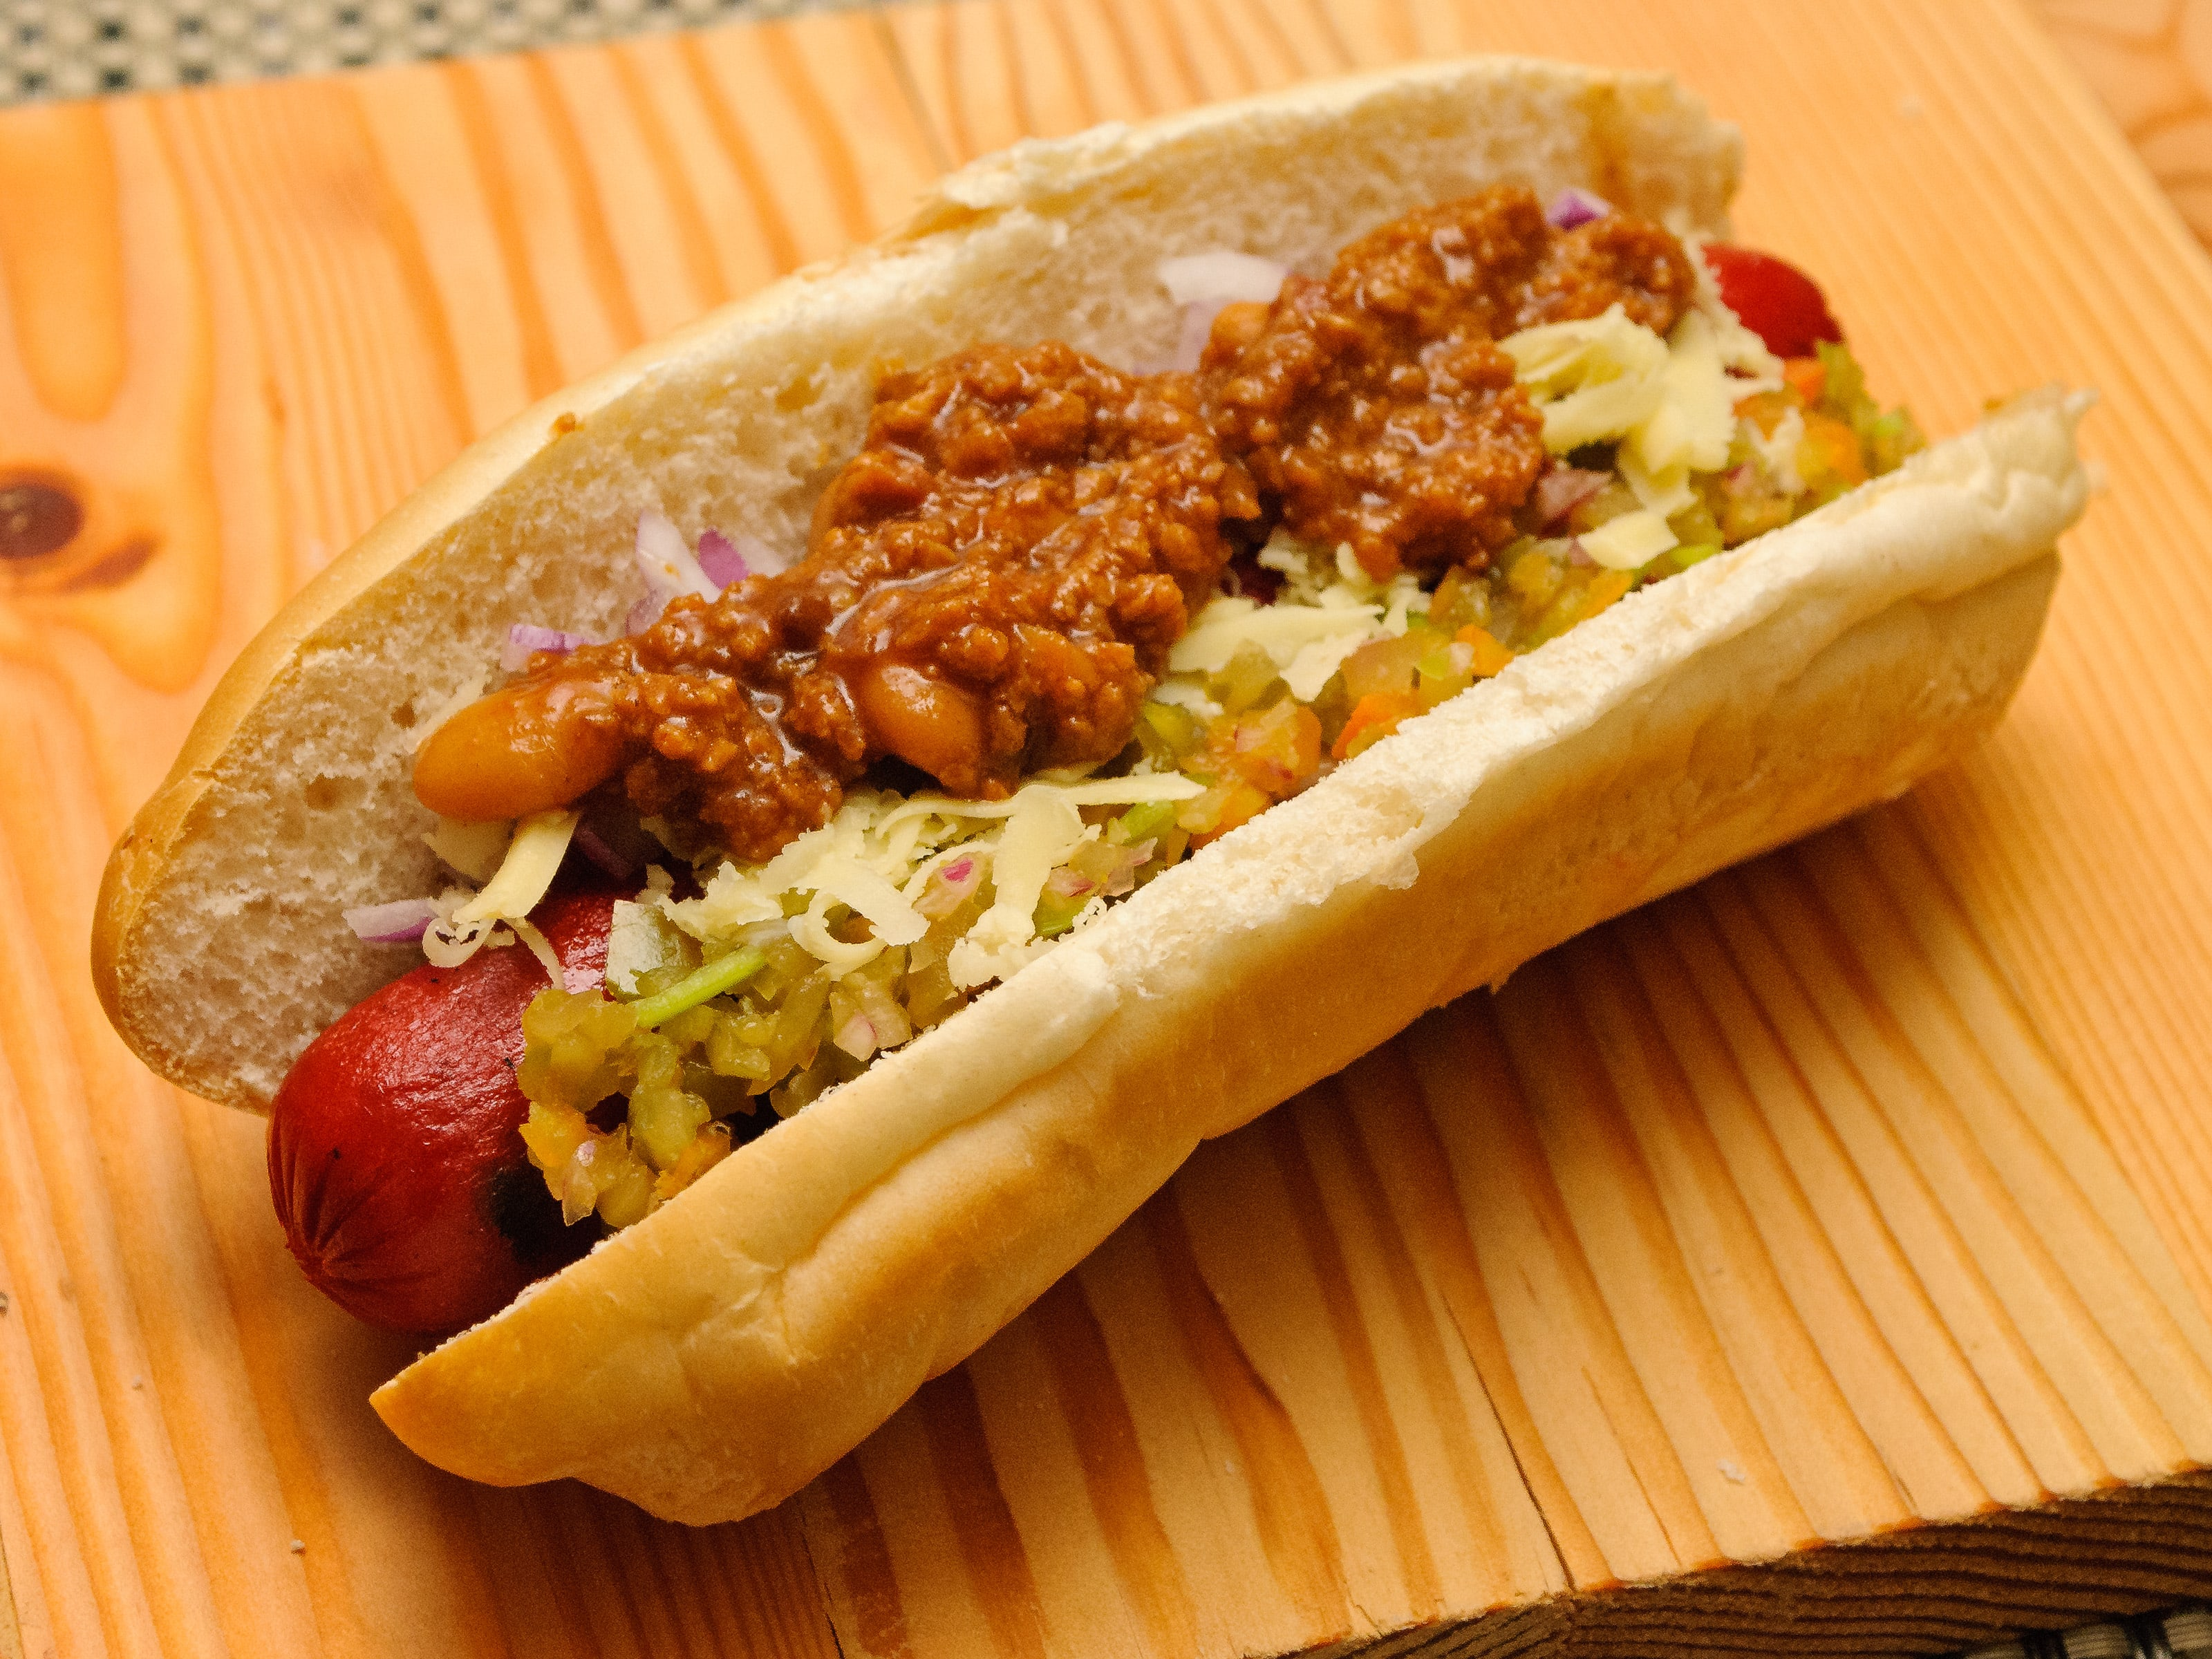 Hot Dog Widescreen for desktop